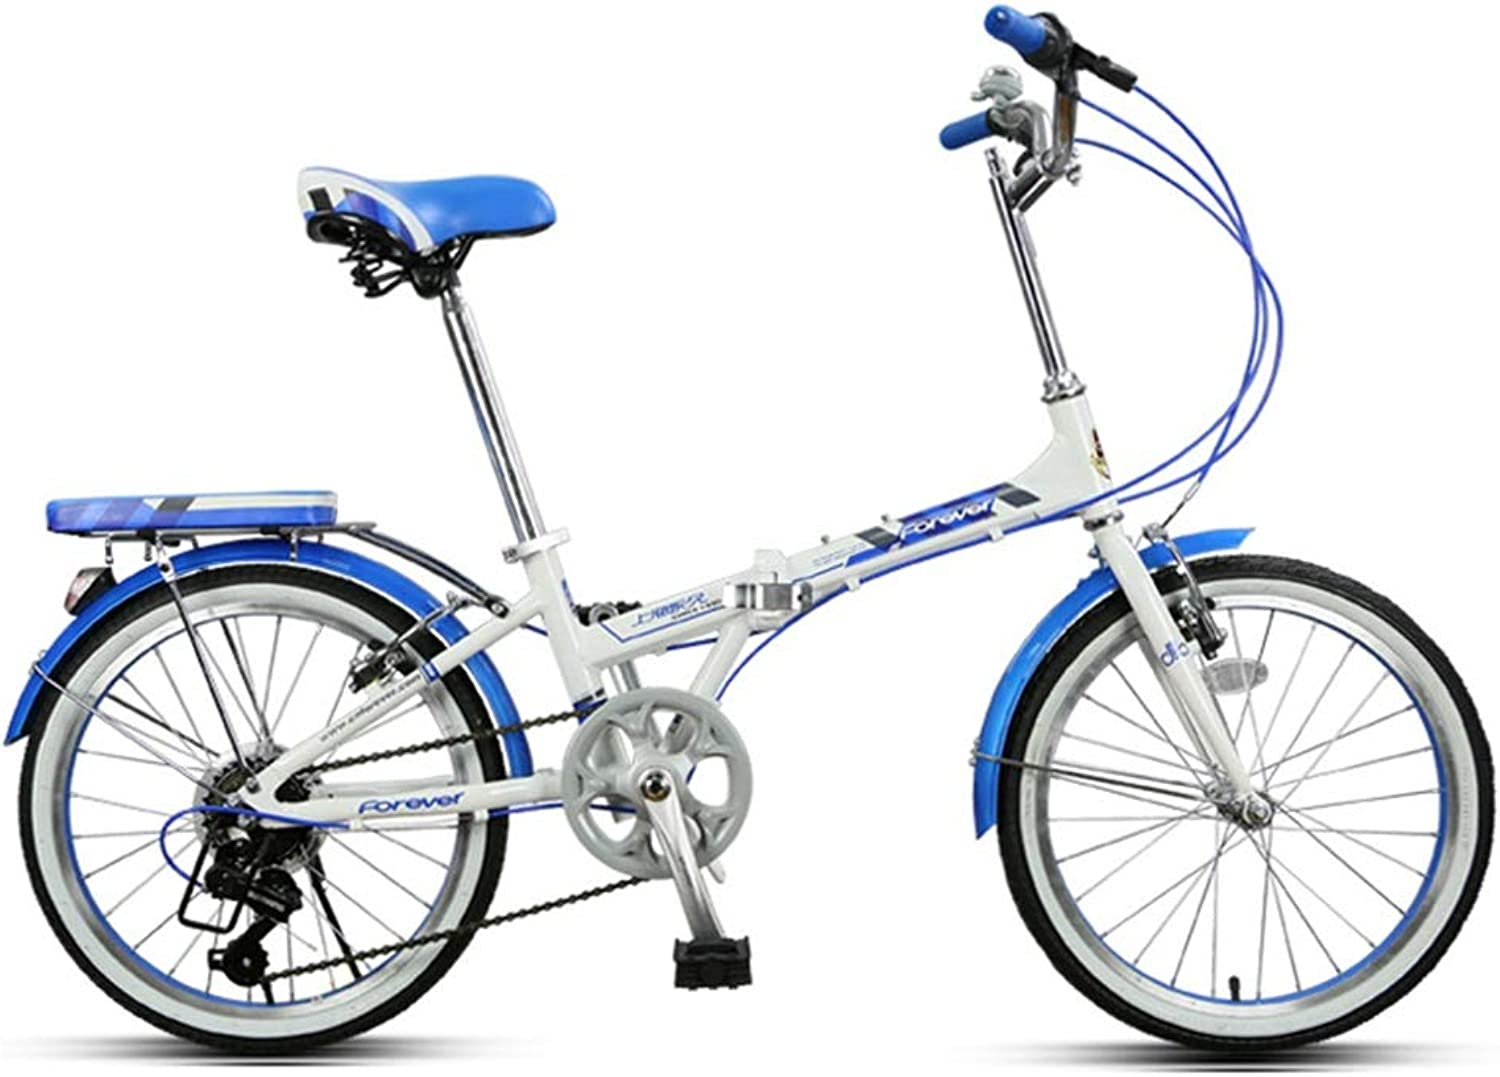 Kids' Bikes Variable Speed Bicycle Folding Bicycle Student Bicycle City Bicycle boy Girl Bicycle Small Bicycle, 20 inches, The Best Gift (color   blueee, Size   150  30  122cm)